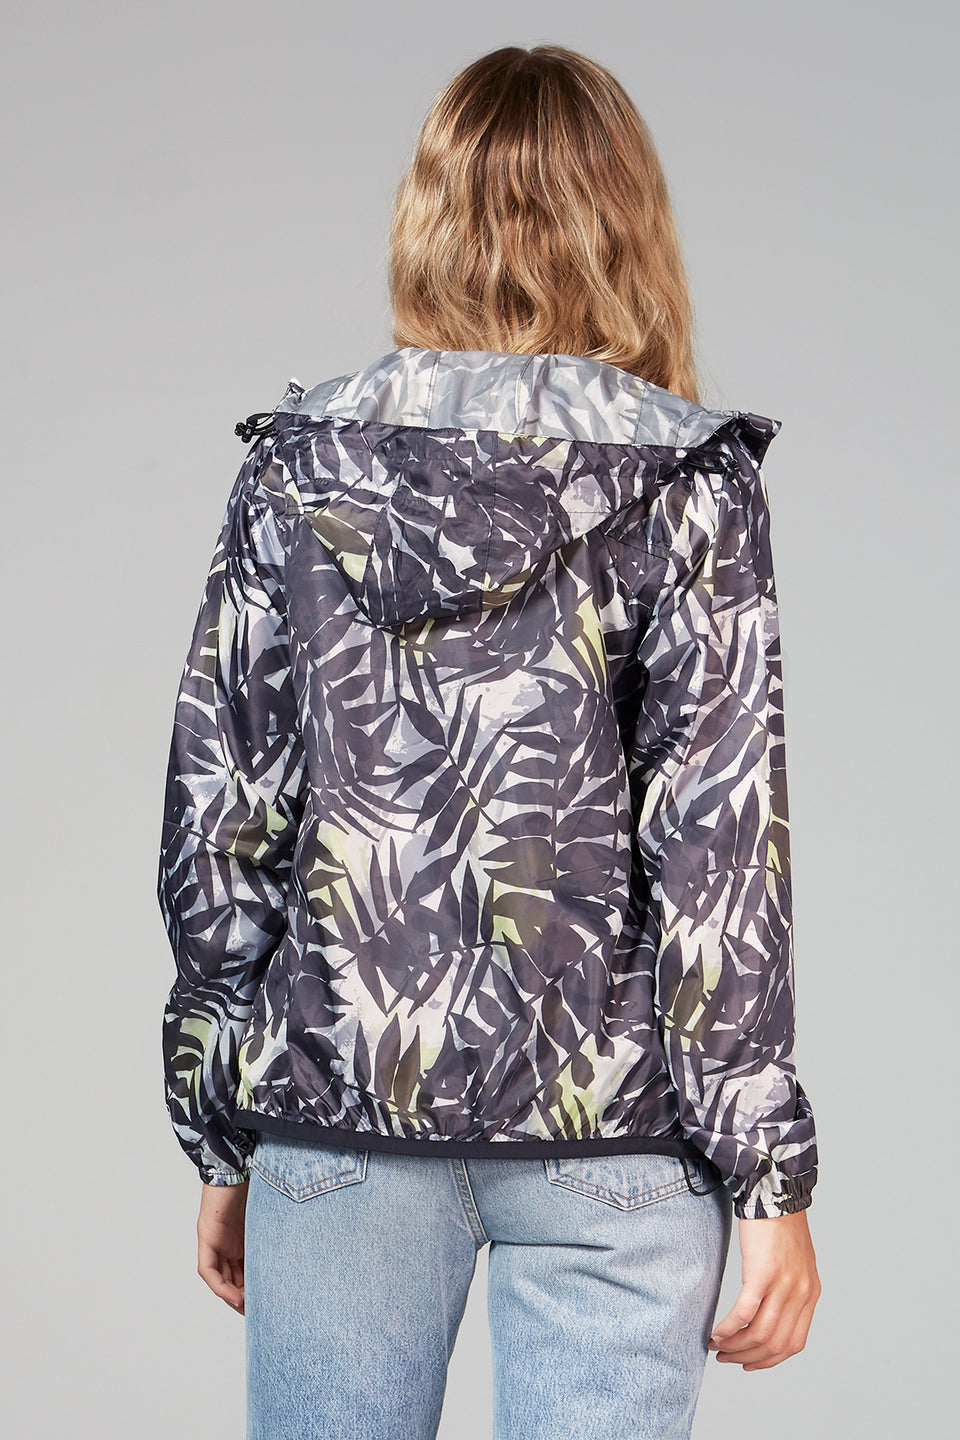 Sloane Print - Palm Print Full Zip Packable Rain Jacket - Woman rain jacket -  O8lifestyle